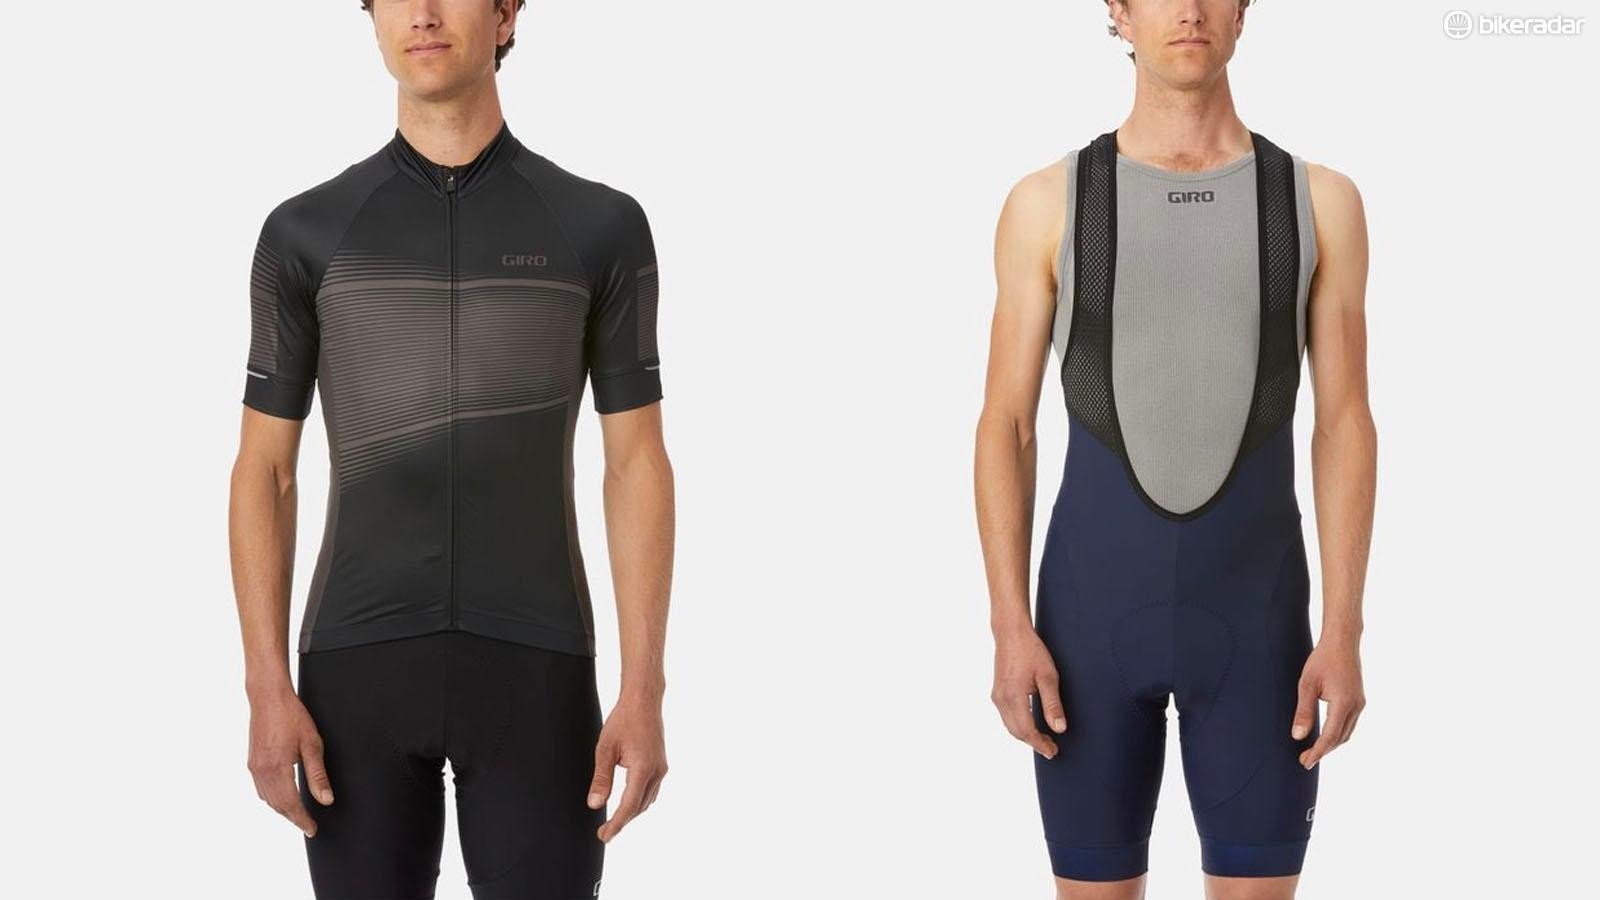 The Chrono Expert jersey and bib are part of the Renew Series